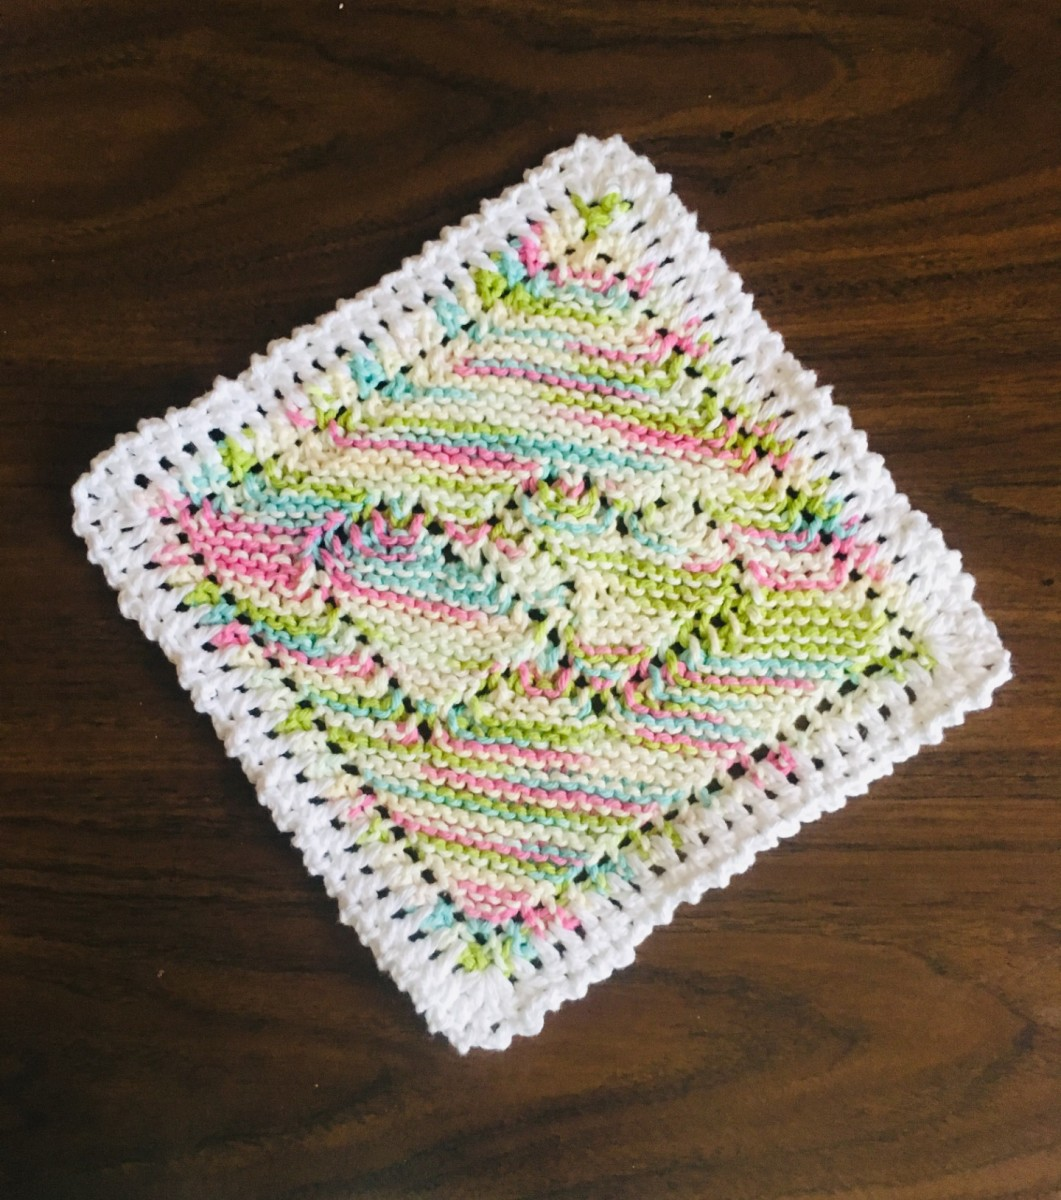 A Contrasting Border Can Add A Delightful Accent To Knit And Crochet Pieces